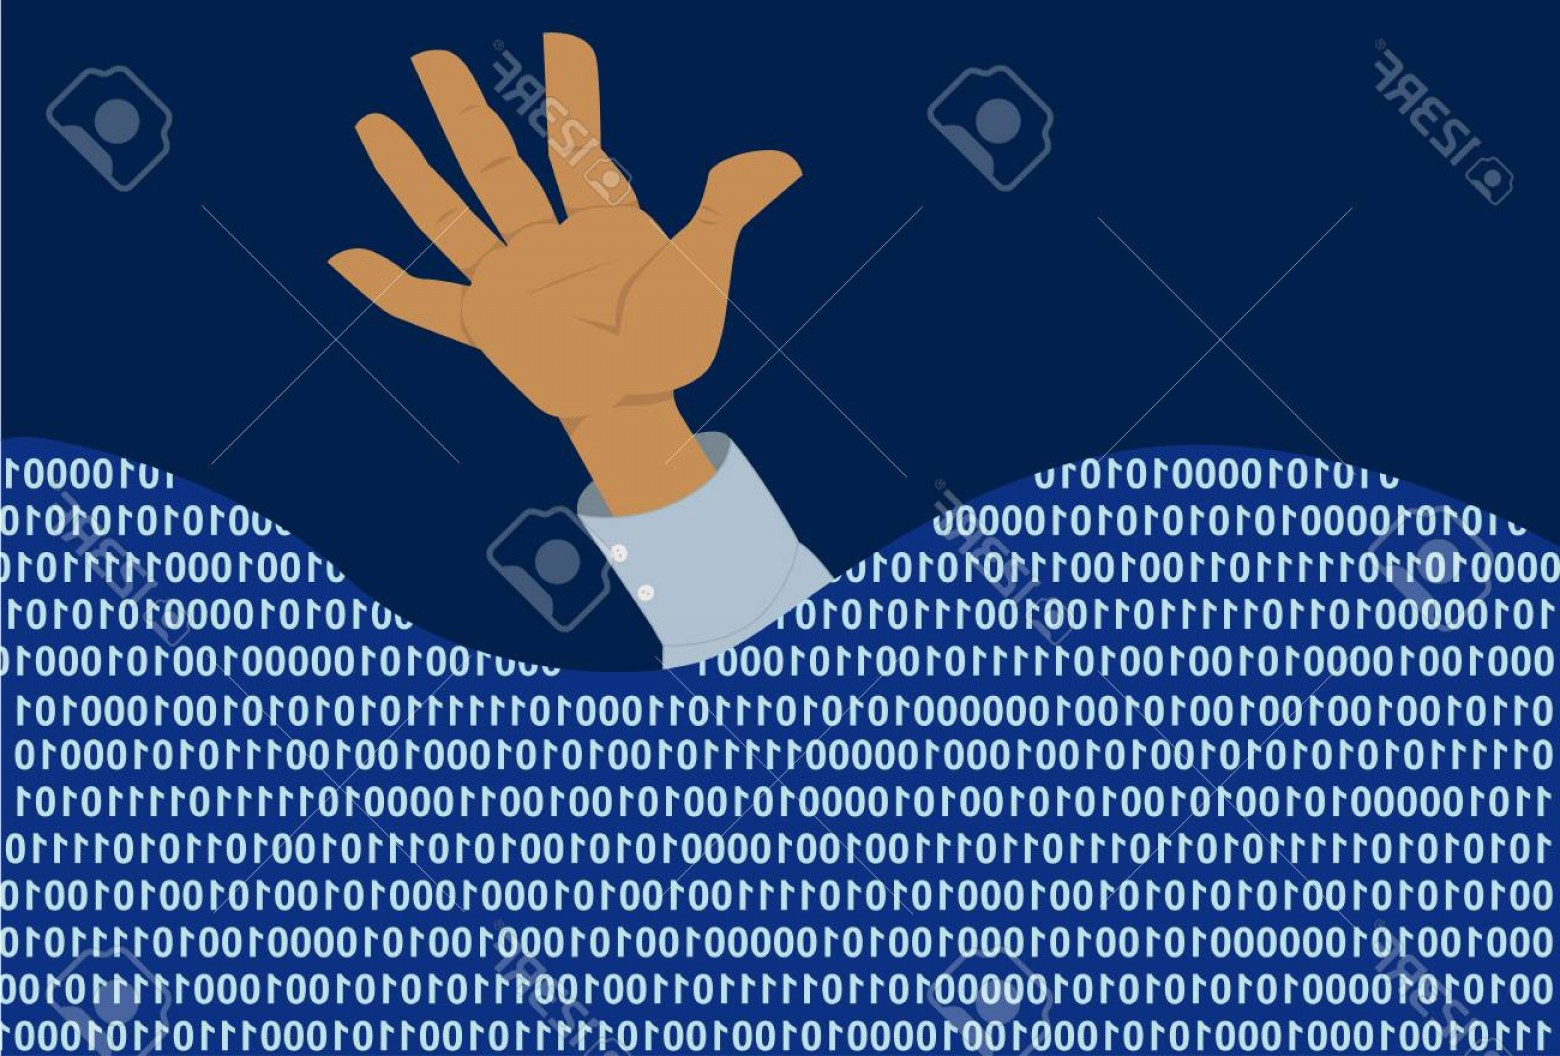 Man Drowning Vector: Photostock Vector Hand Of A Man Drowning In A Sea Of Computer Code Eps Vector Illustration